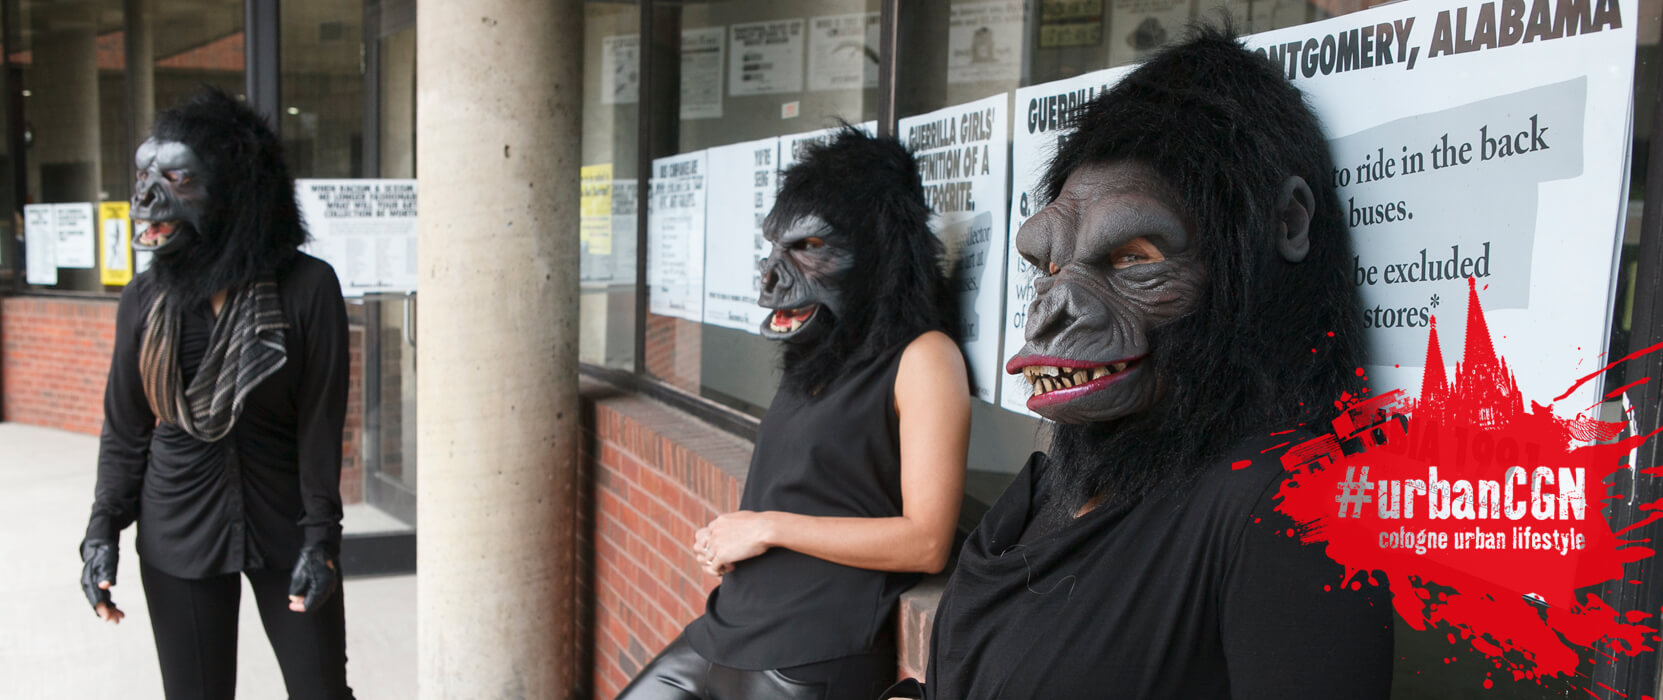 Ludwig, 700px, © Guerrilla Girls. Courtesy guerrillagirls.com